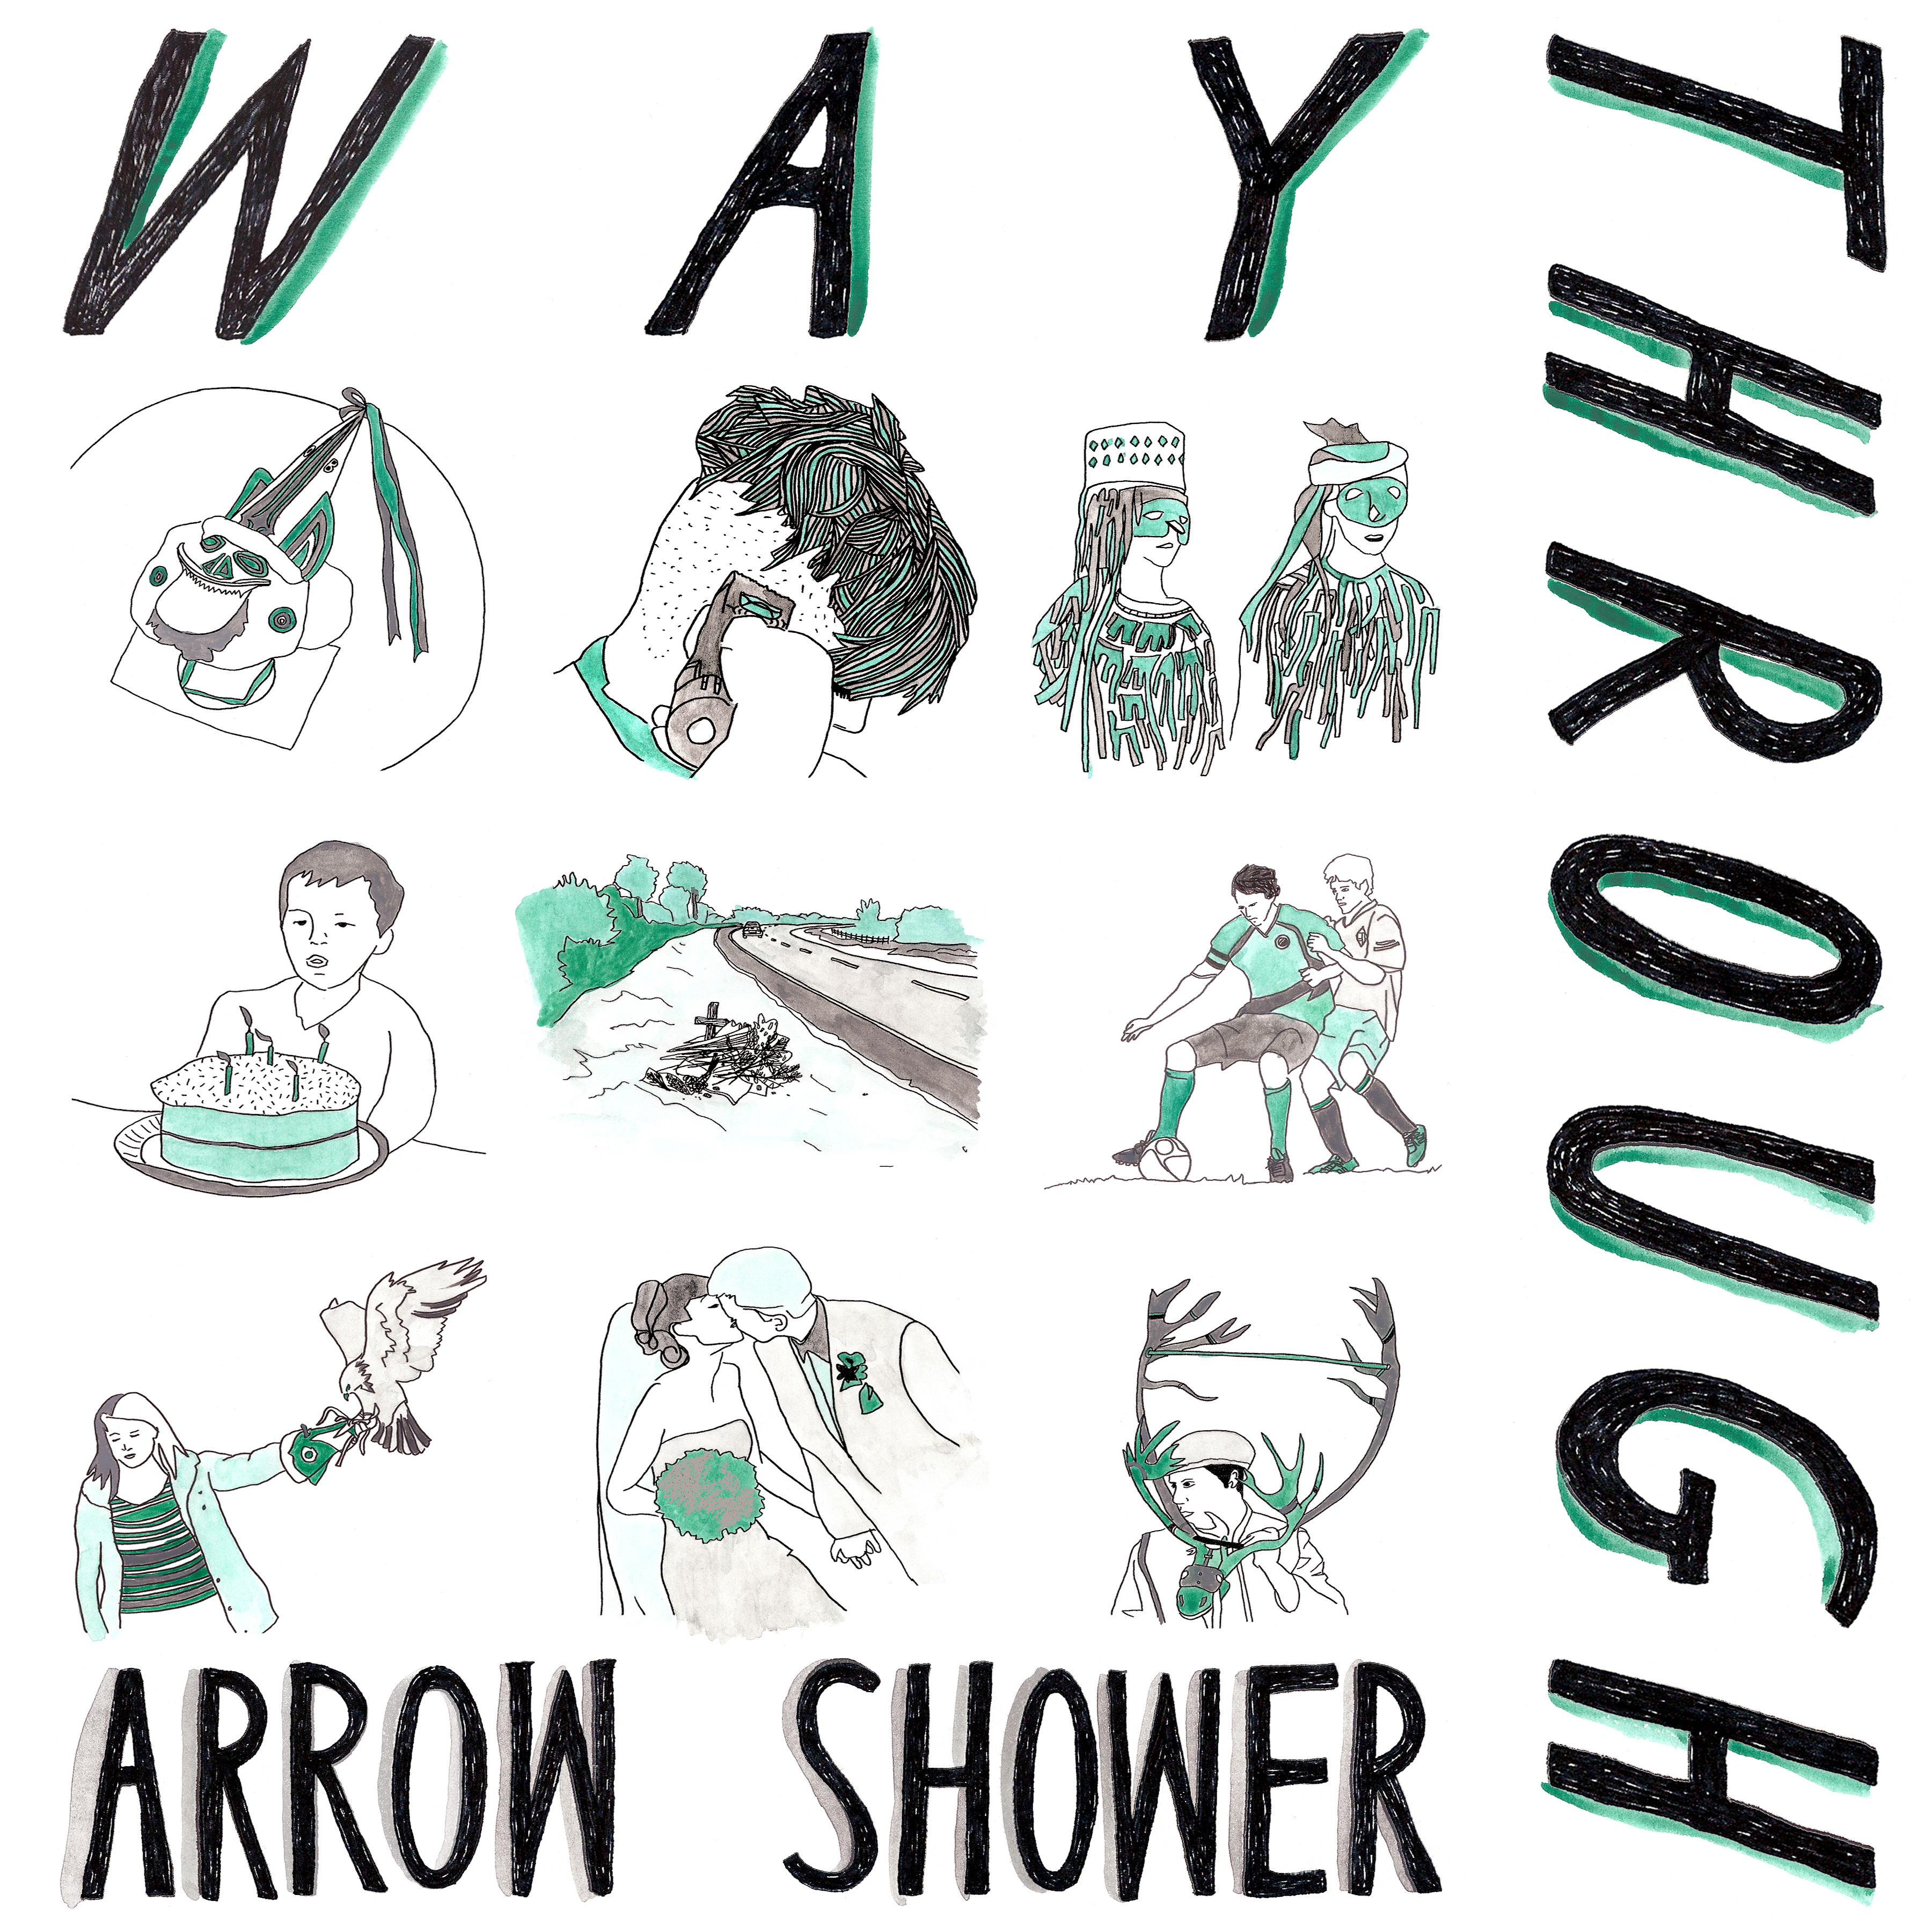 'Arrow Shower'